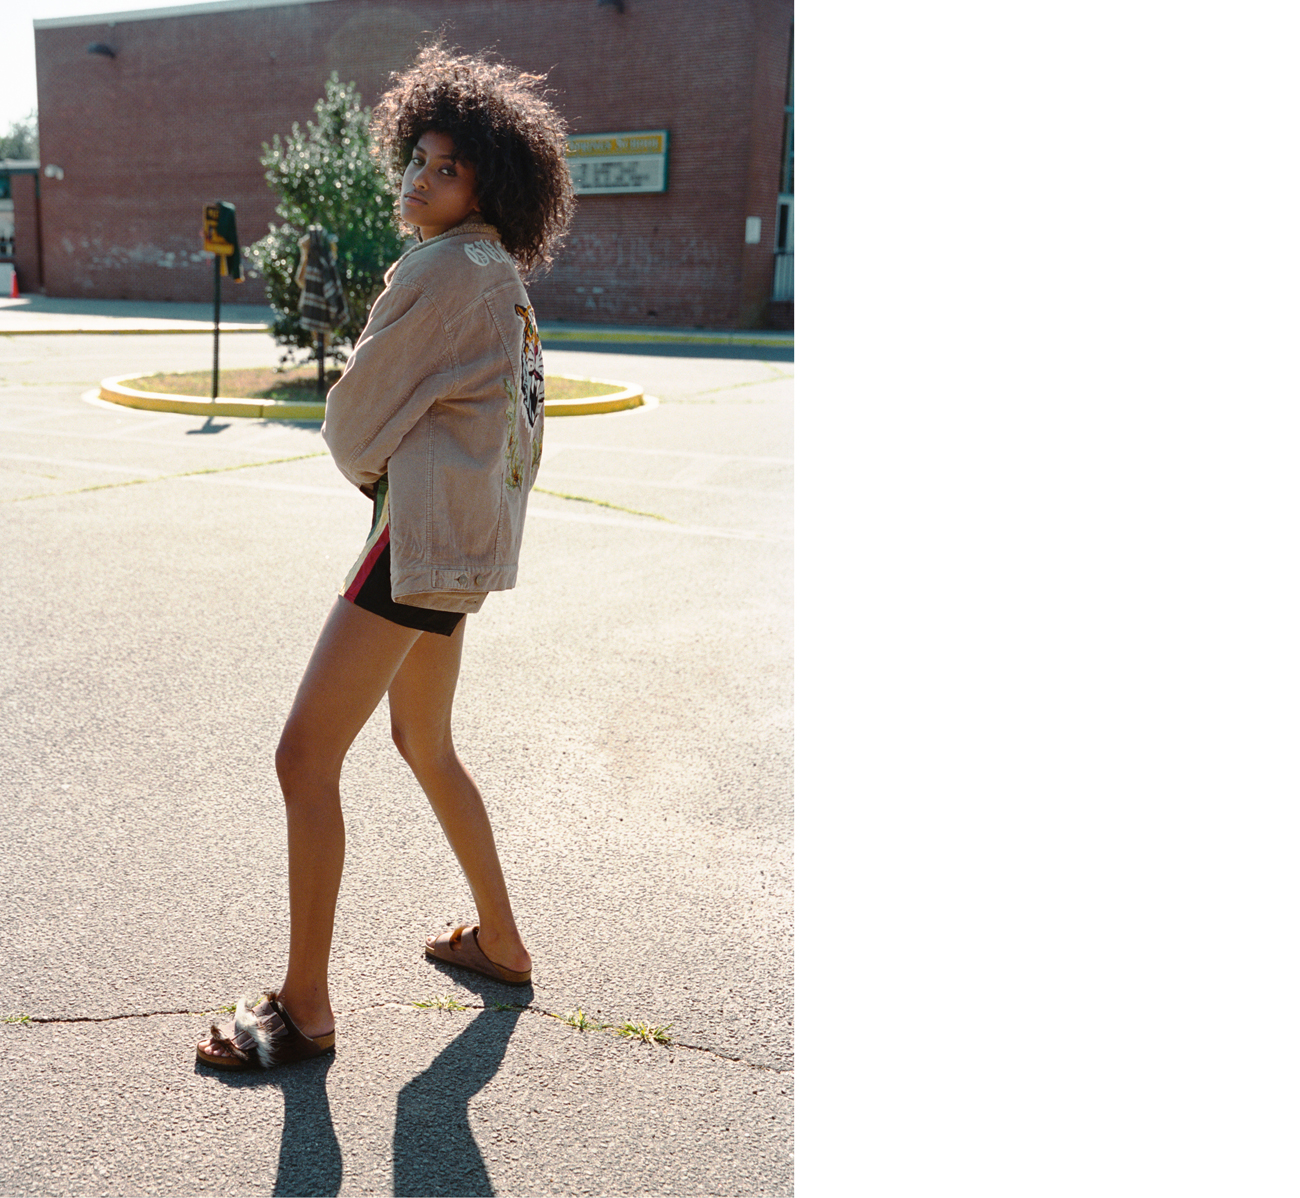 Jacket by Gucci. Vintage shorts from Southpaw Vintage, New York. Sandals by Birkenstock.